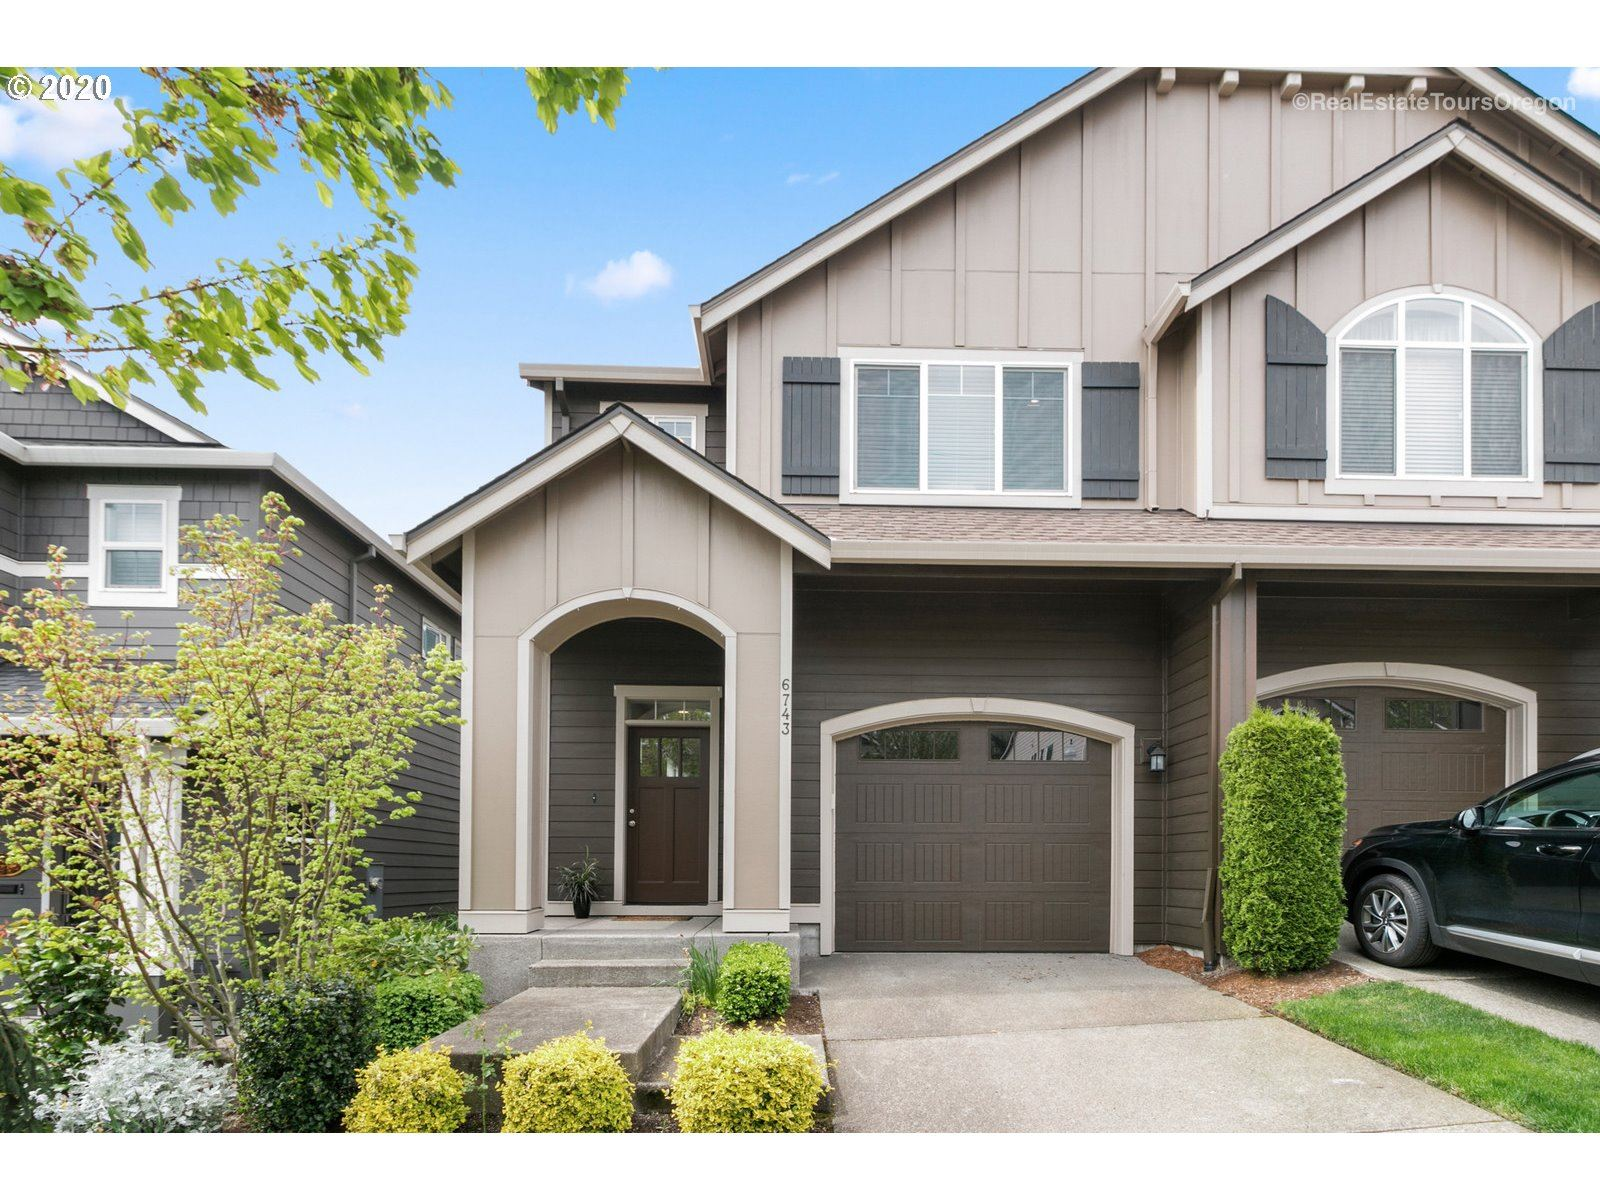 6743 NW 163RD AVE, Portland, OR 97229 - MLS#: 20579455